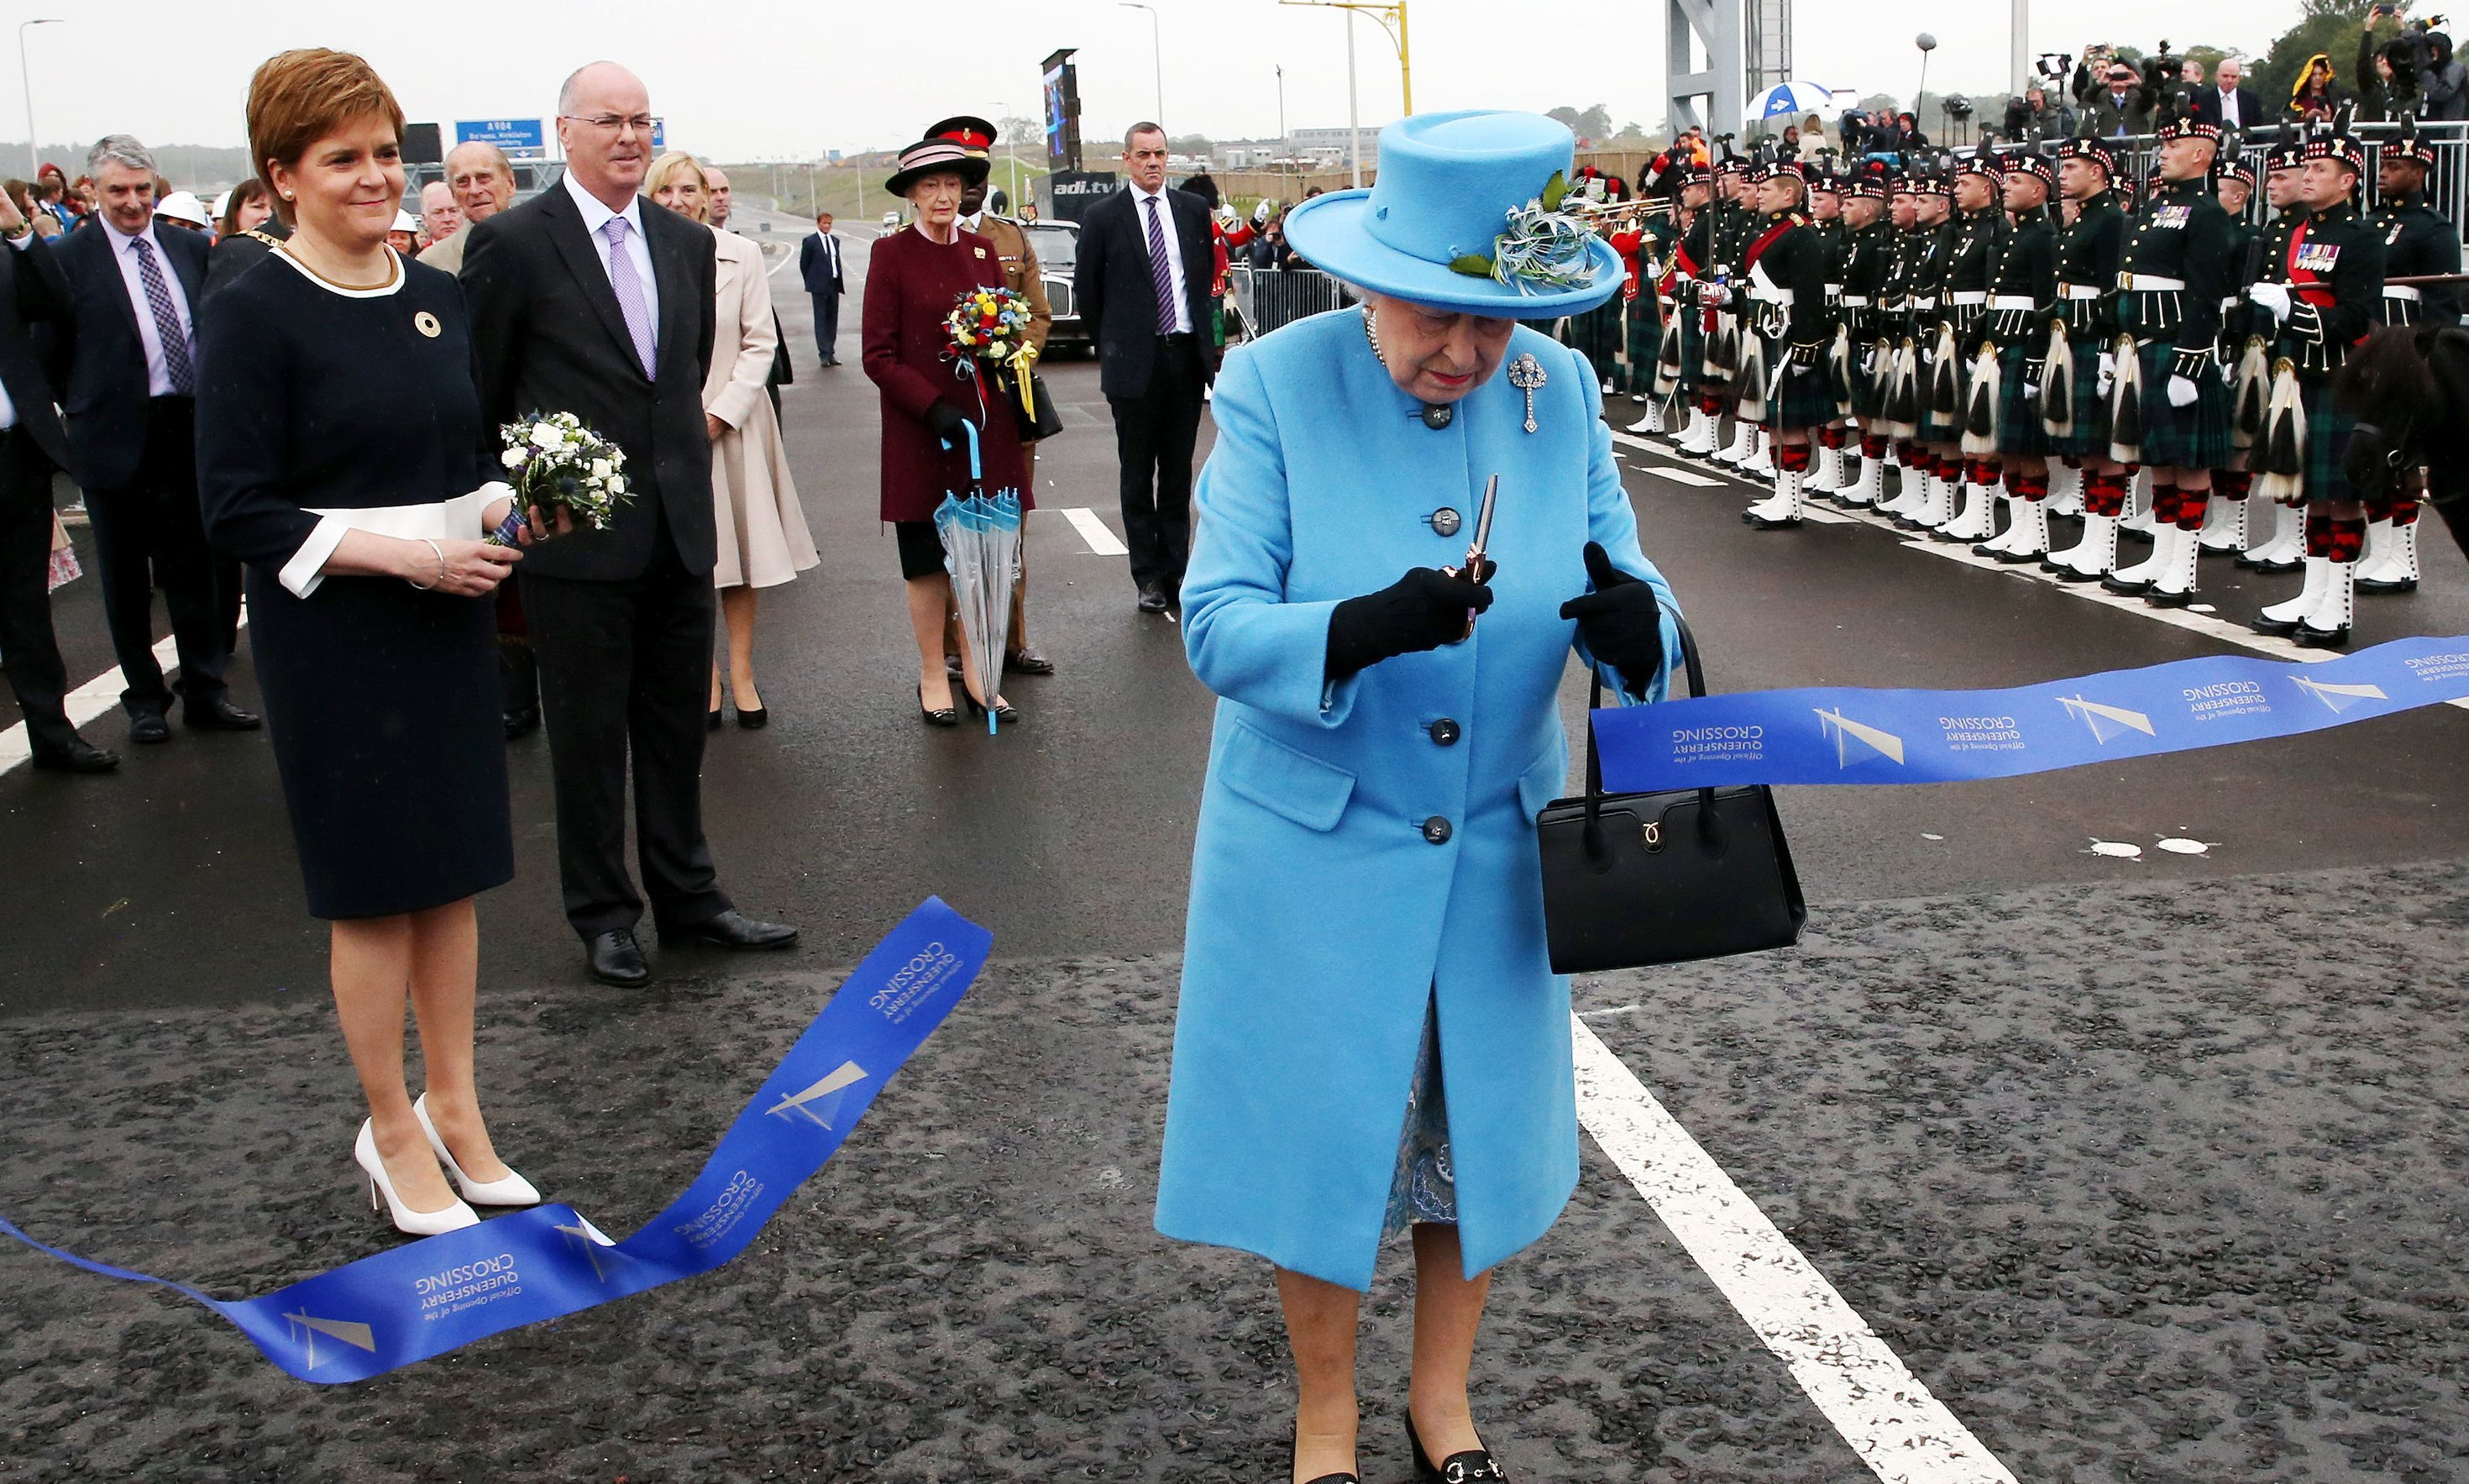 The Queen officially opens the Queensferry Crossing as First Minister Nicola Sturgeon looks on.